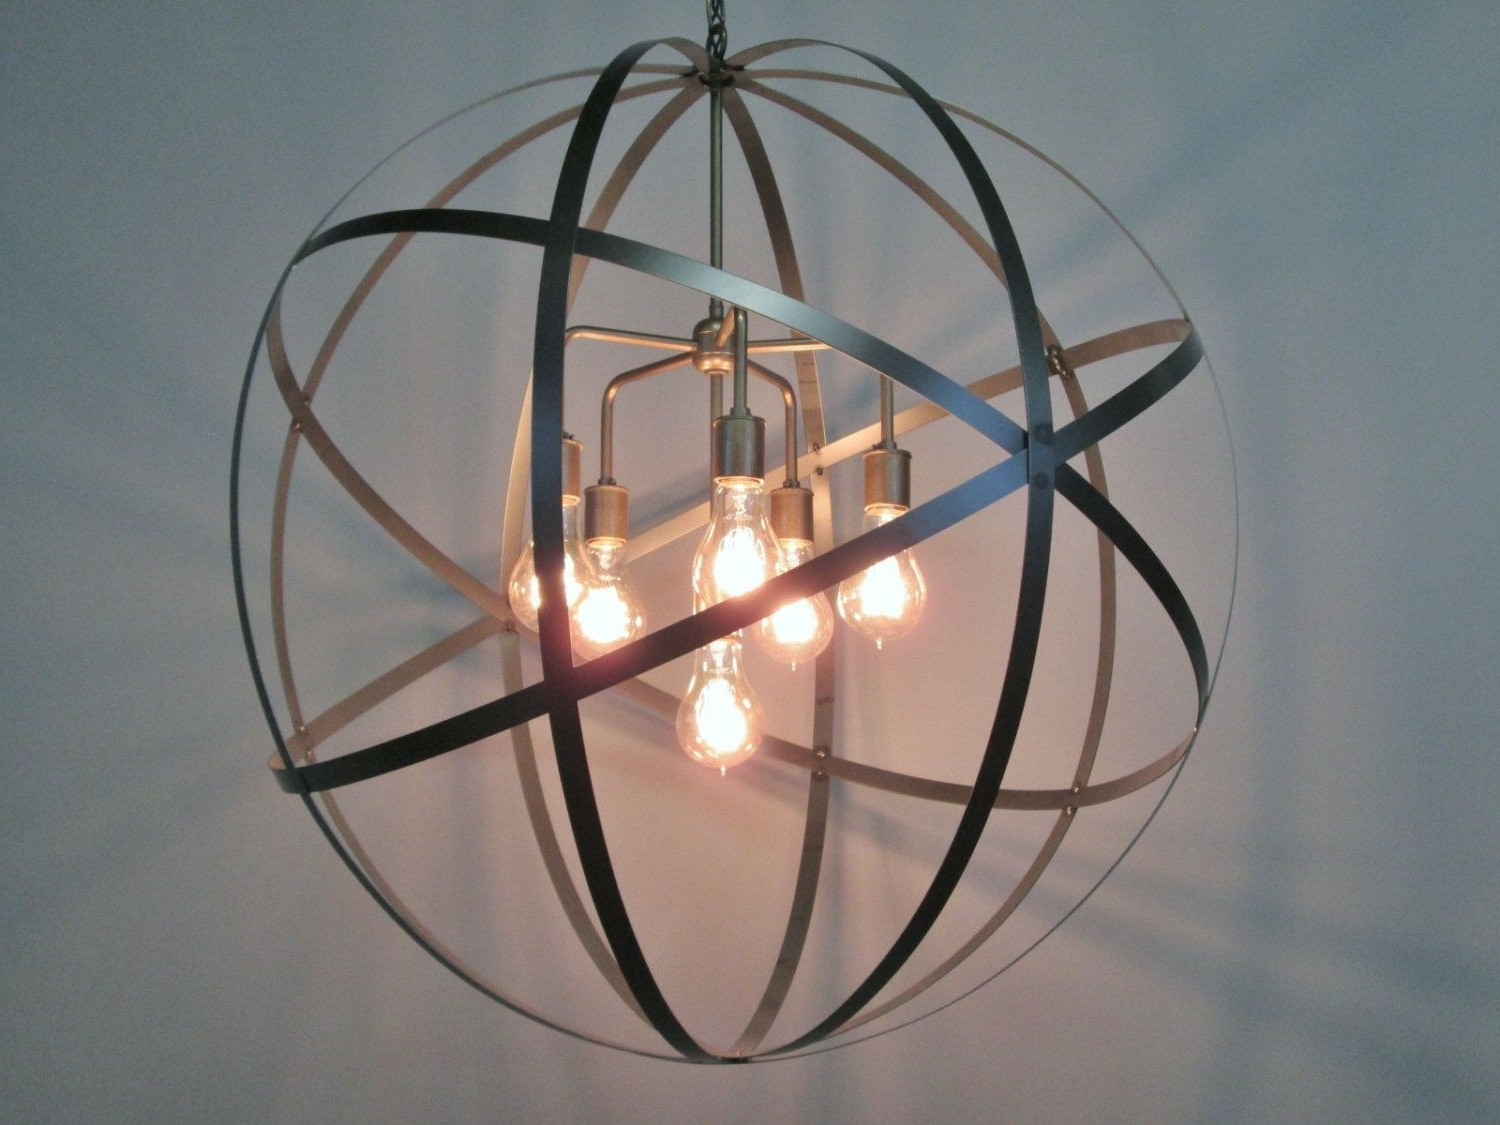 Beautiful Orb Chandelier For Home Decor Lights Ideas: Industrial 30 Pertaining To Trendy Orb Chandelier (View 10 of 20)